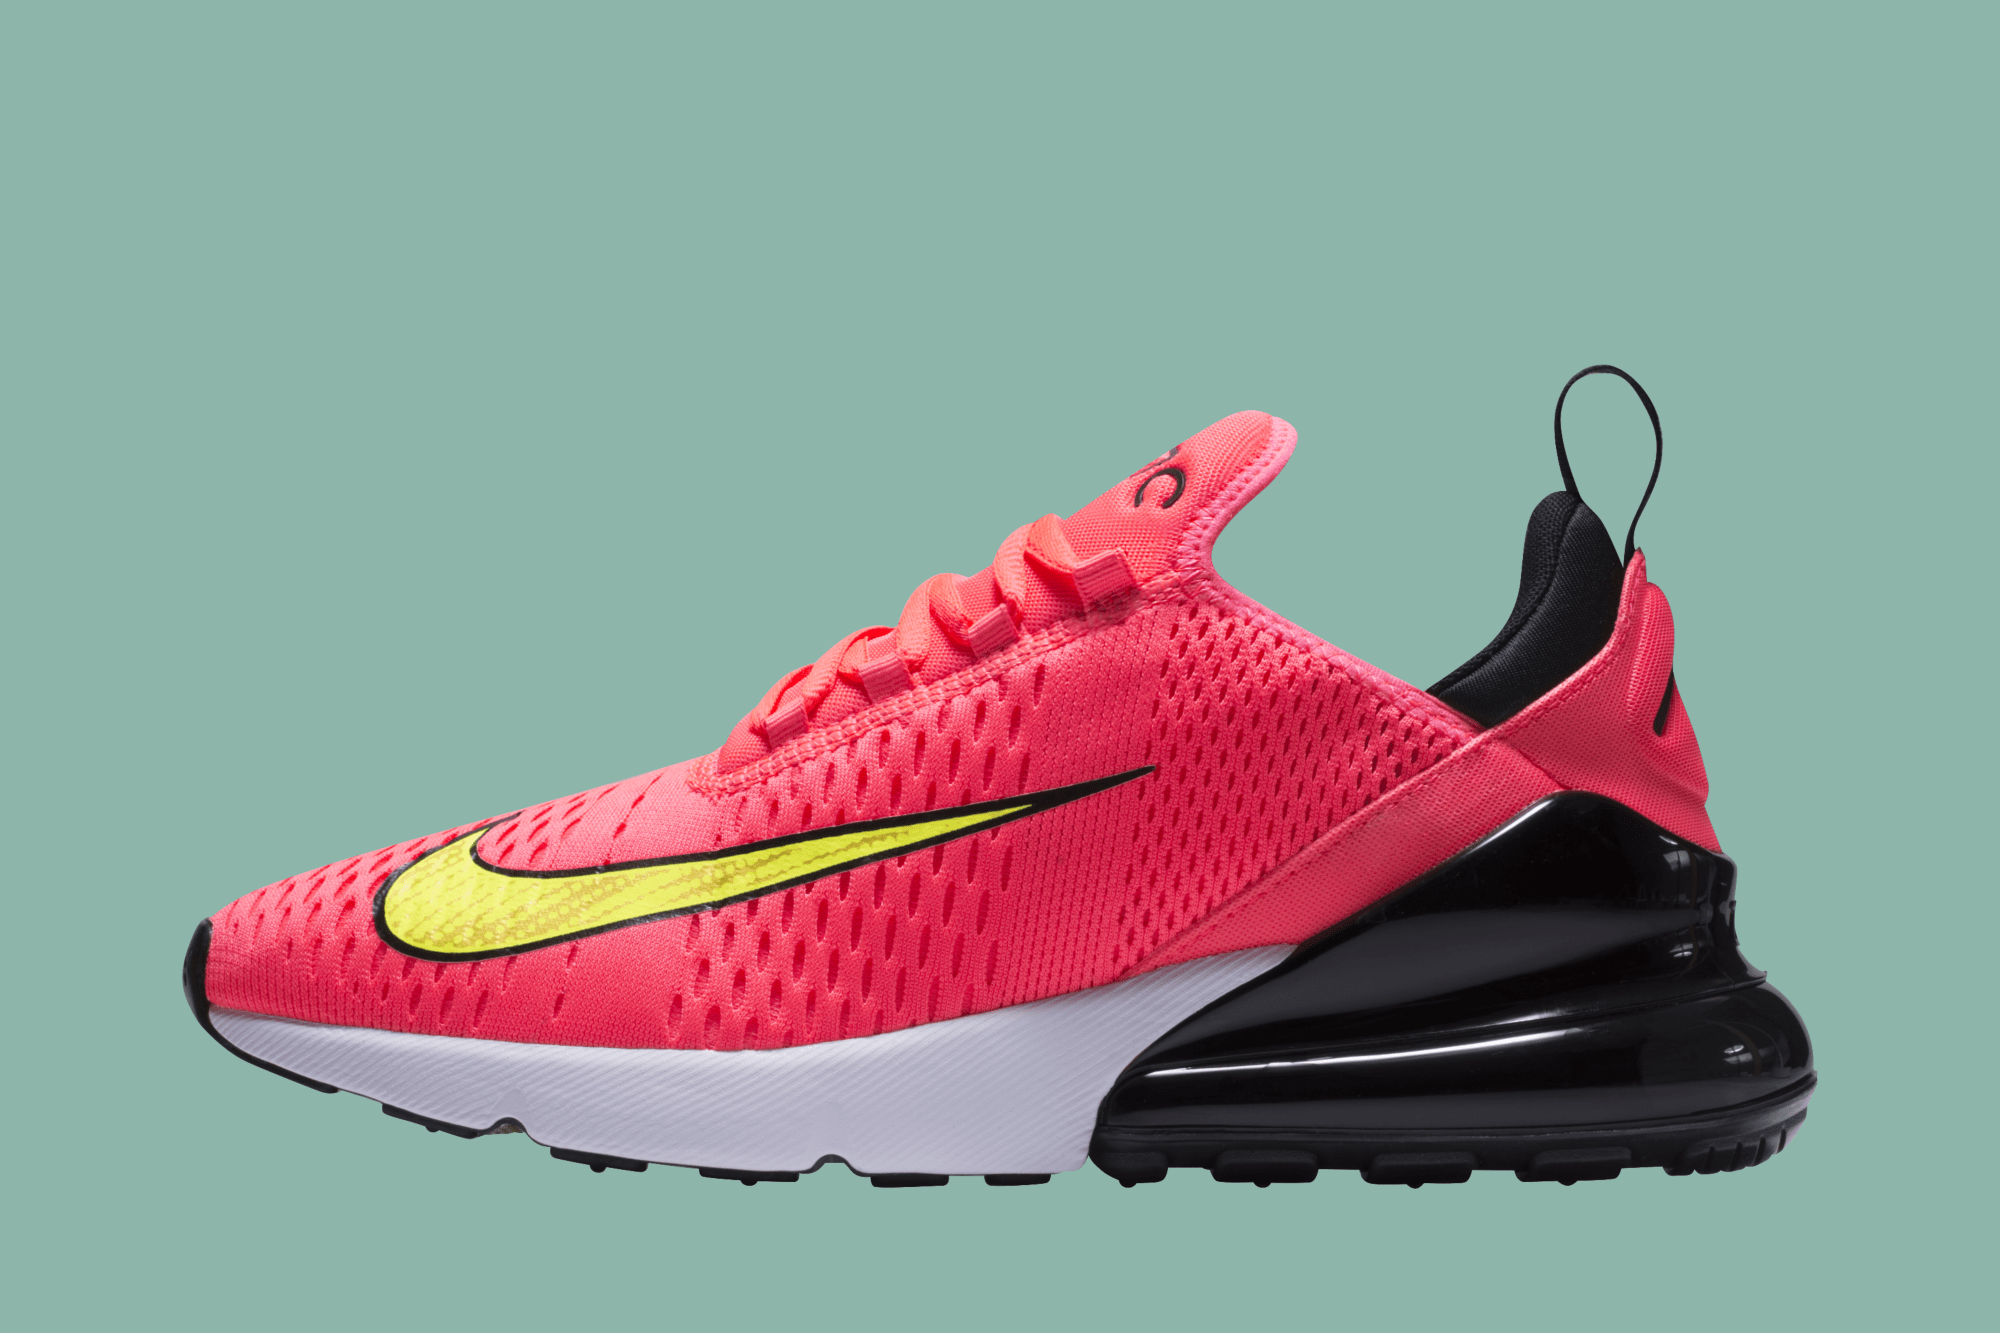 Nike Air Max 270 iD Mercurial Collection Next Level Kickz